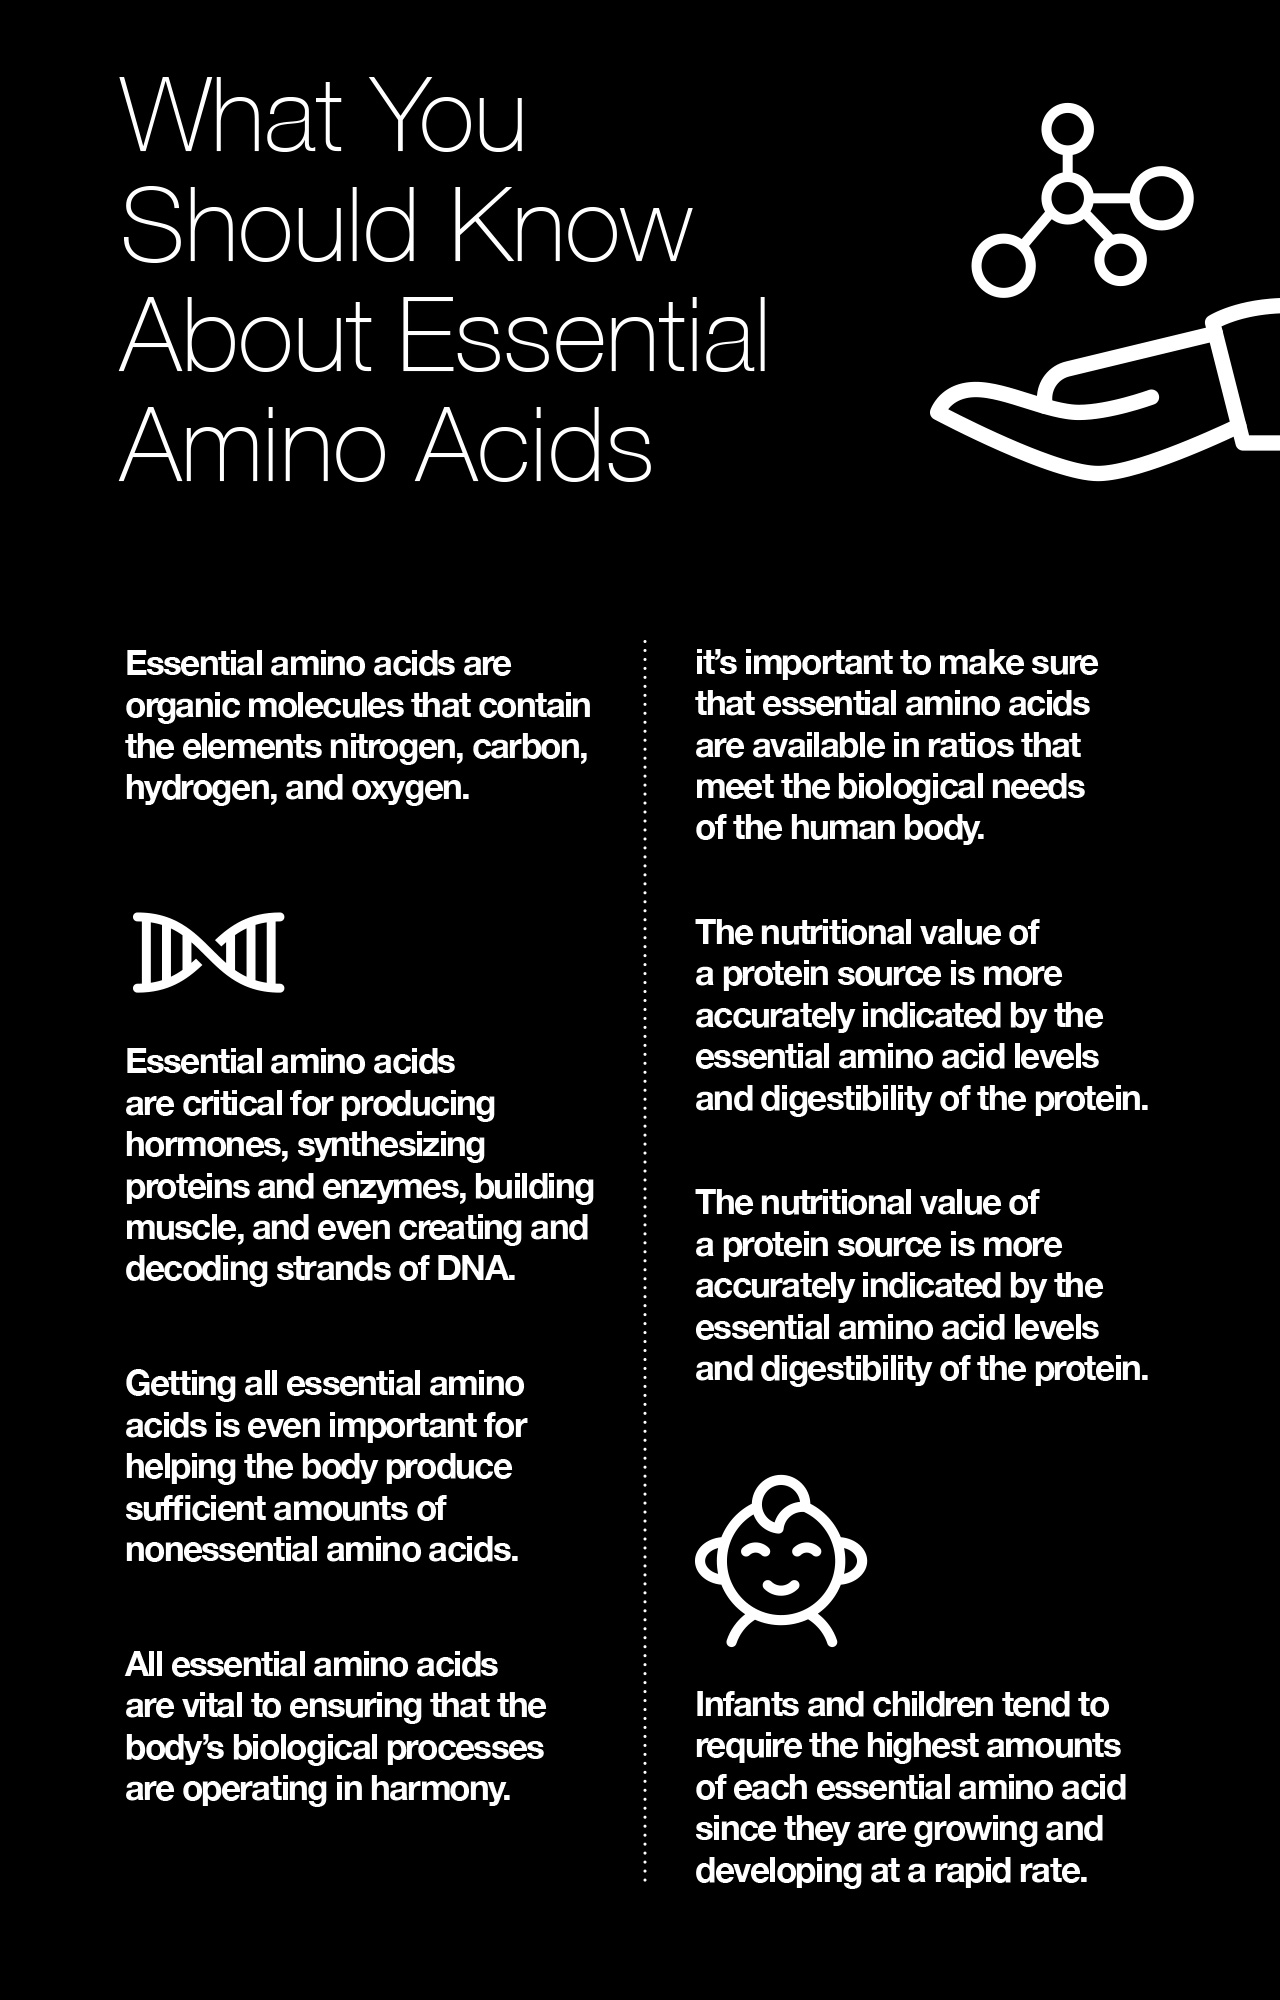 What You Should Know About Essential Amino Acids